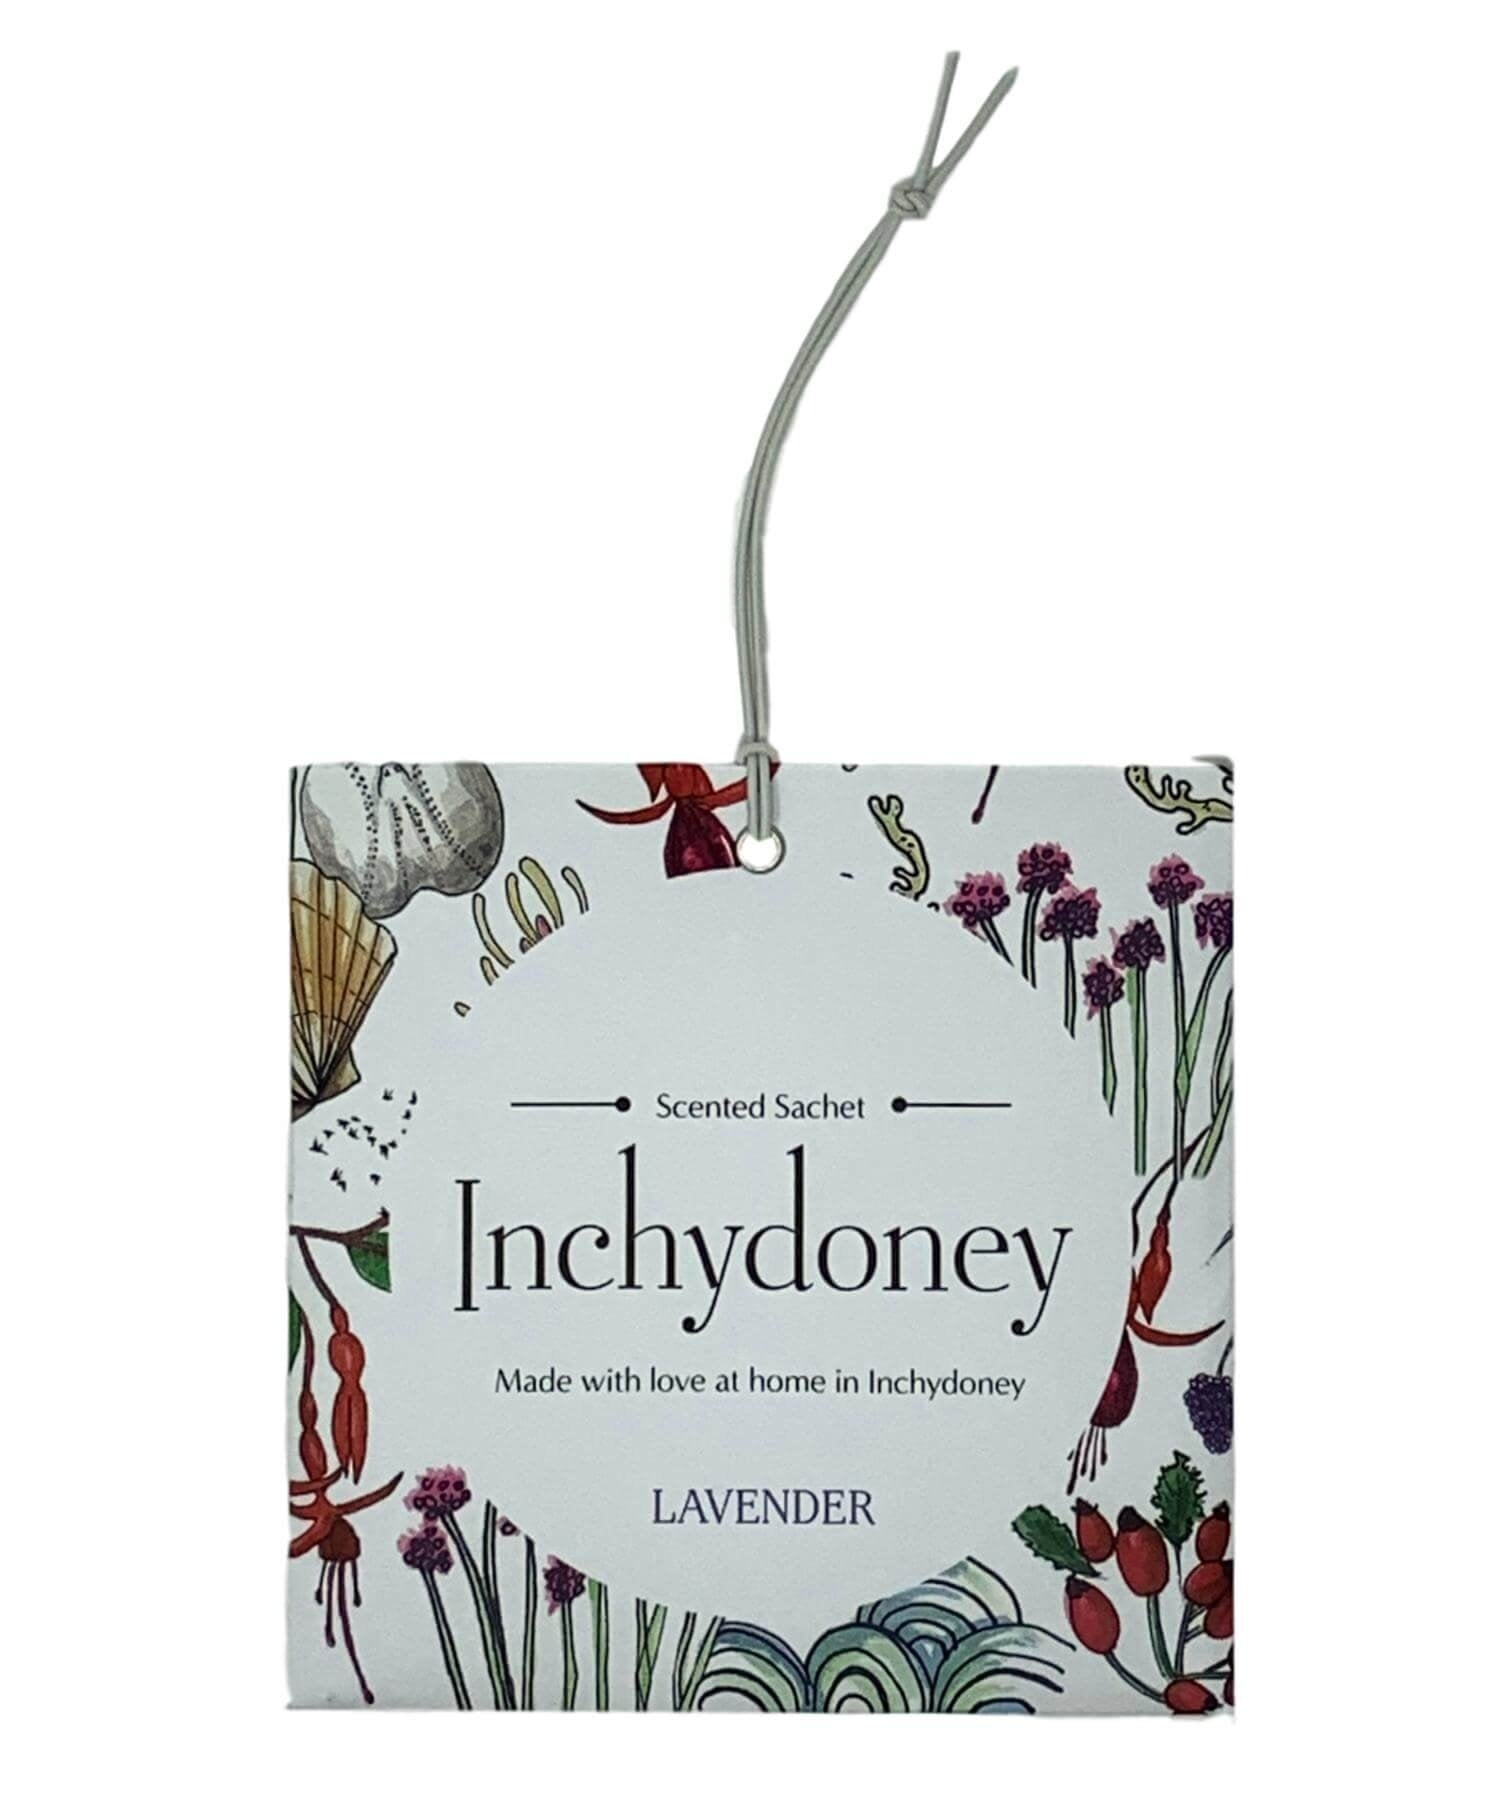 Scented Sachet - Lavender - [Inchydoney Candles] - Home Fragrance - Irish Gifts